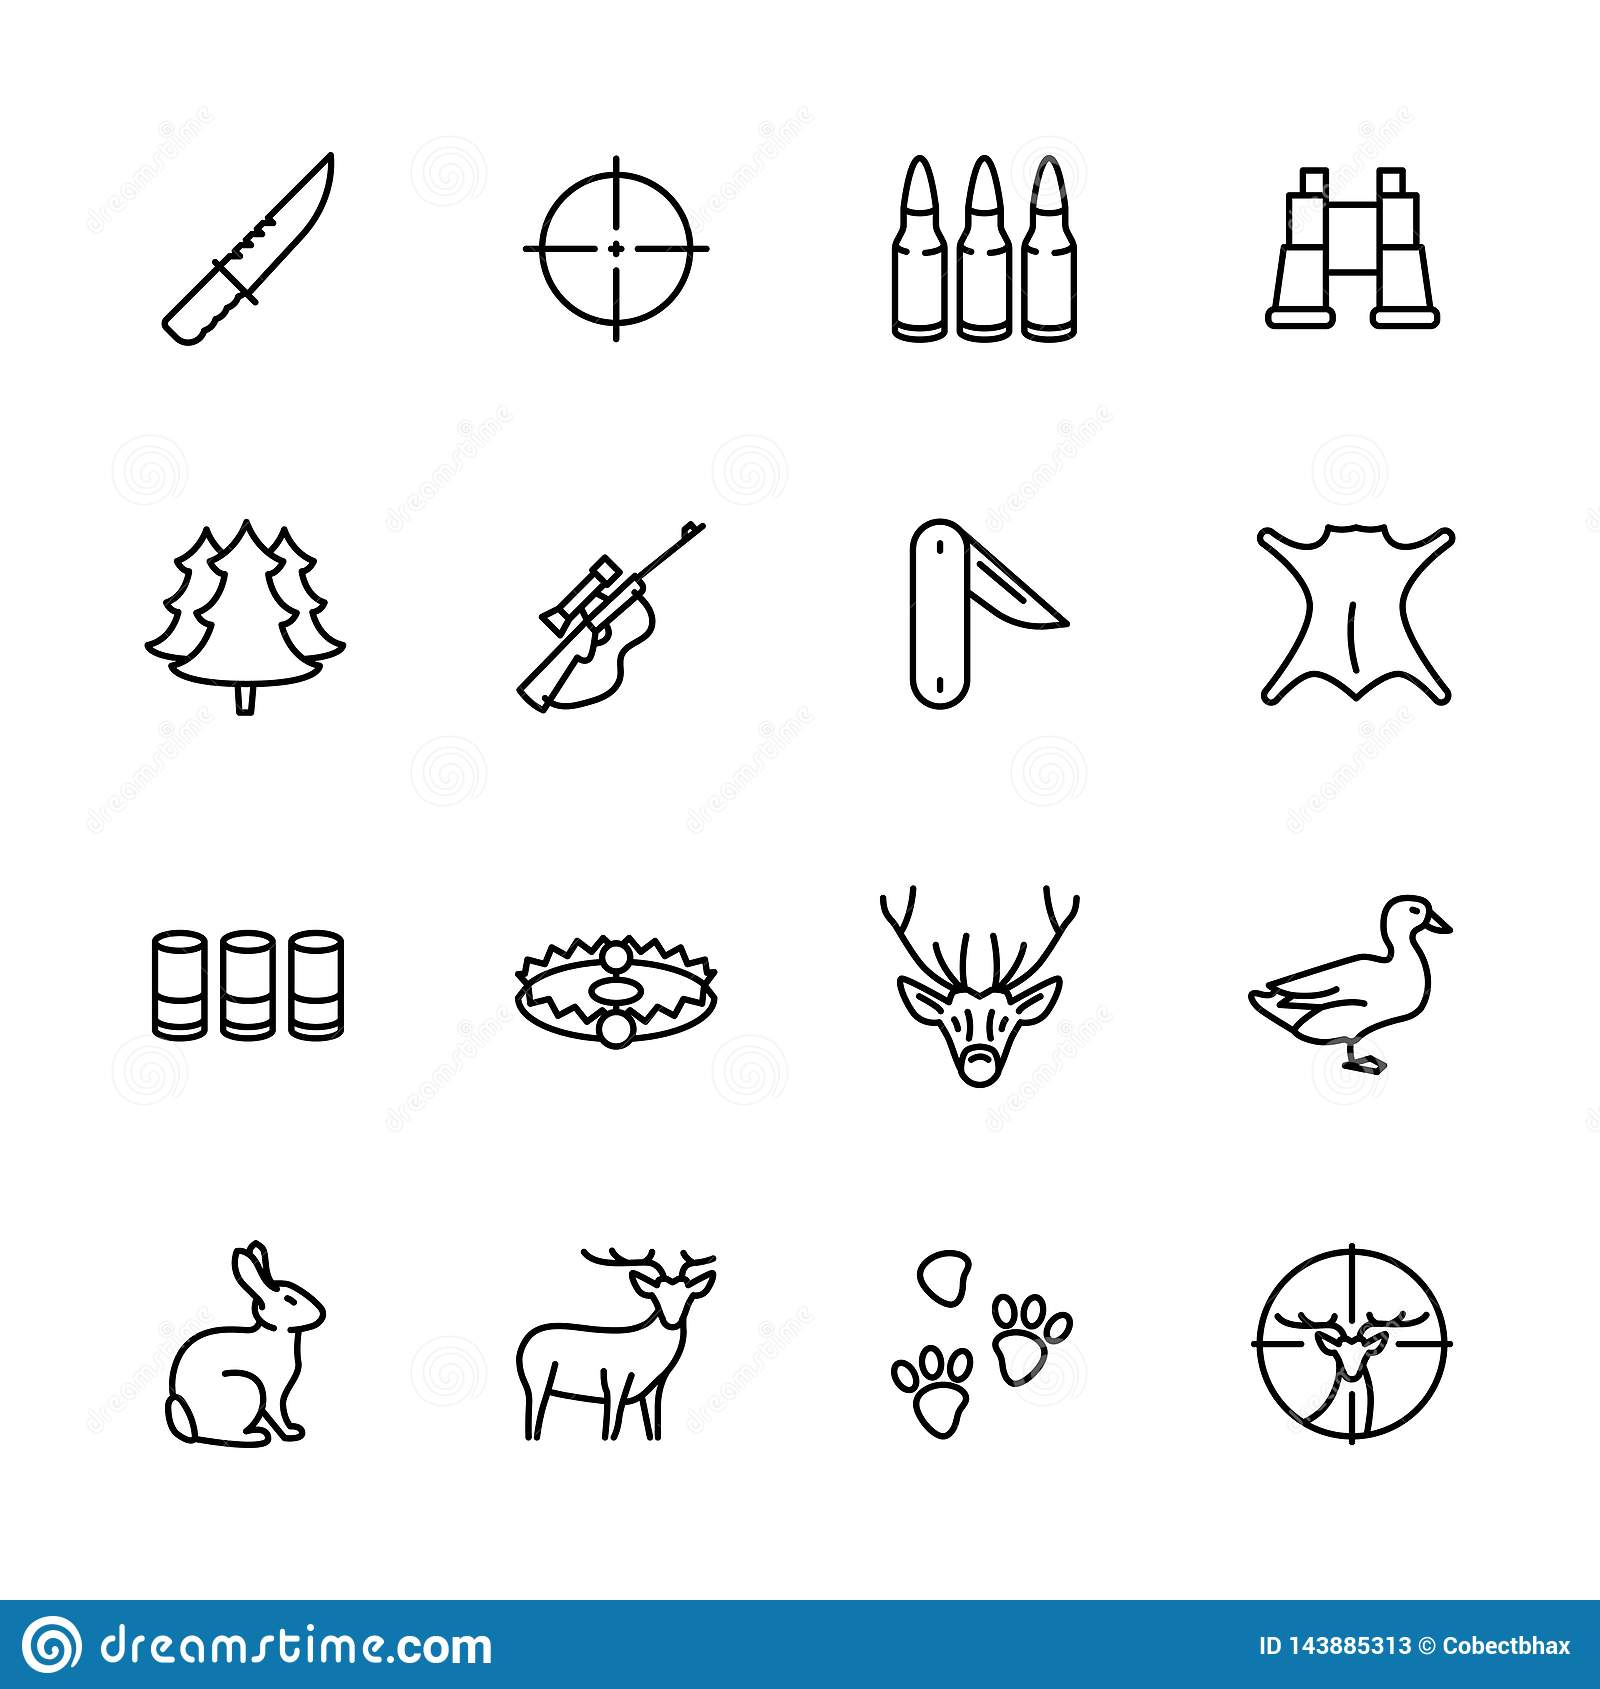 Simple icon set forest hunting. Contains such symbols knife, bullets, ammunition, hunting rifle, weapon, binoculars